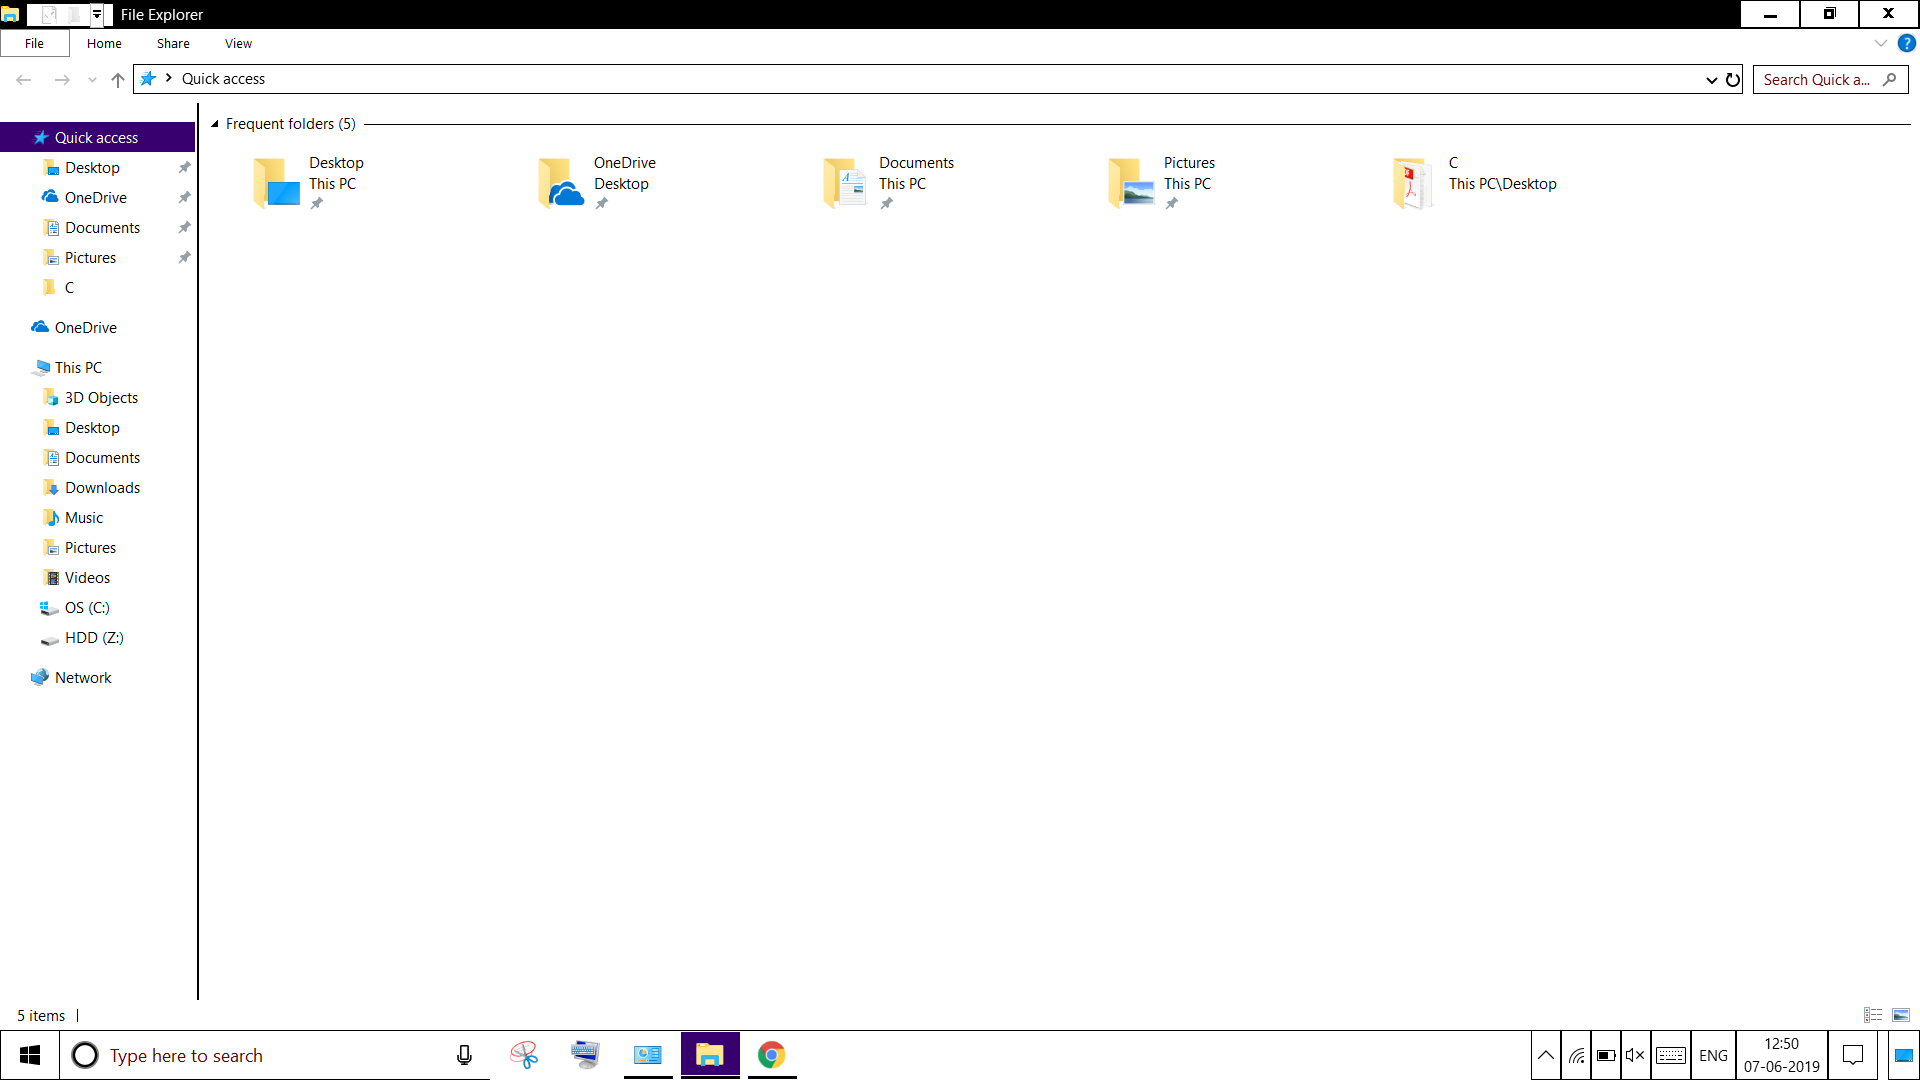 Windows text is invisible (unless I hover over it) 7d875dfb-0b99-4fd2-bb3e-ace17548cd52?upload=true.png